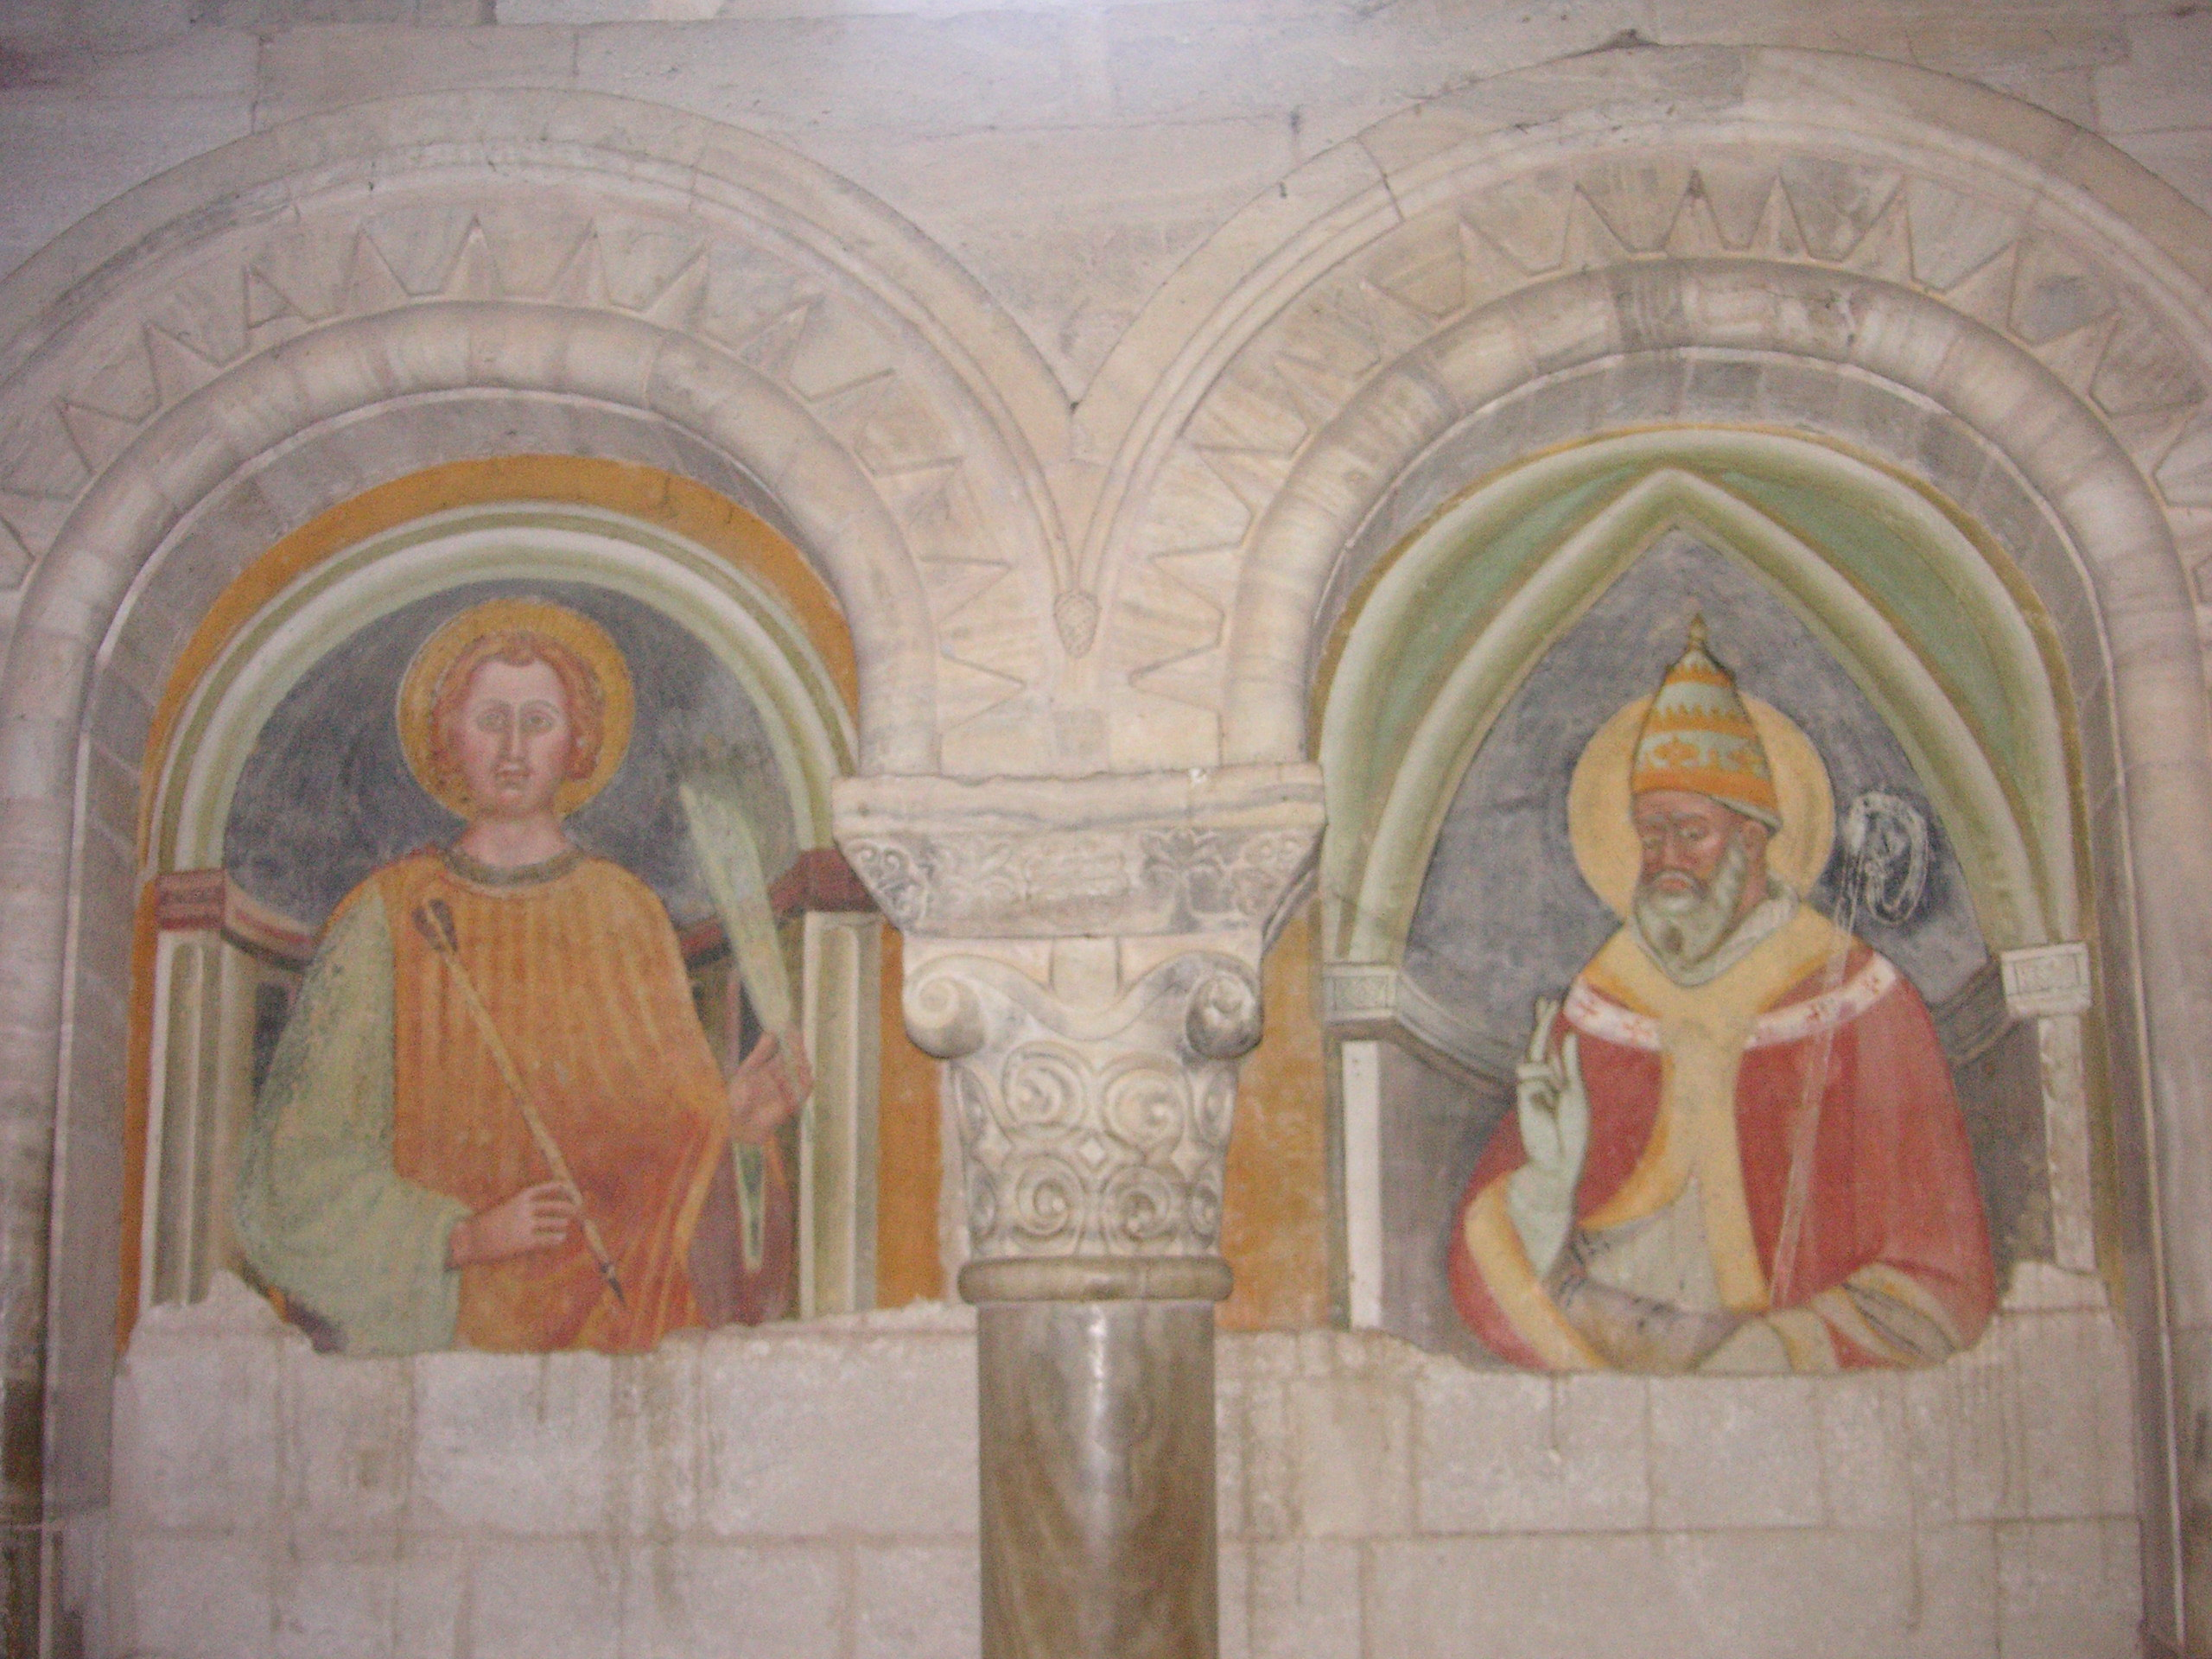 https://upload.wikimedia.org/wikipedia/commons/4/46/Sant%27Antimo_affreschi.JPG